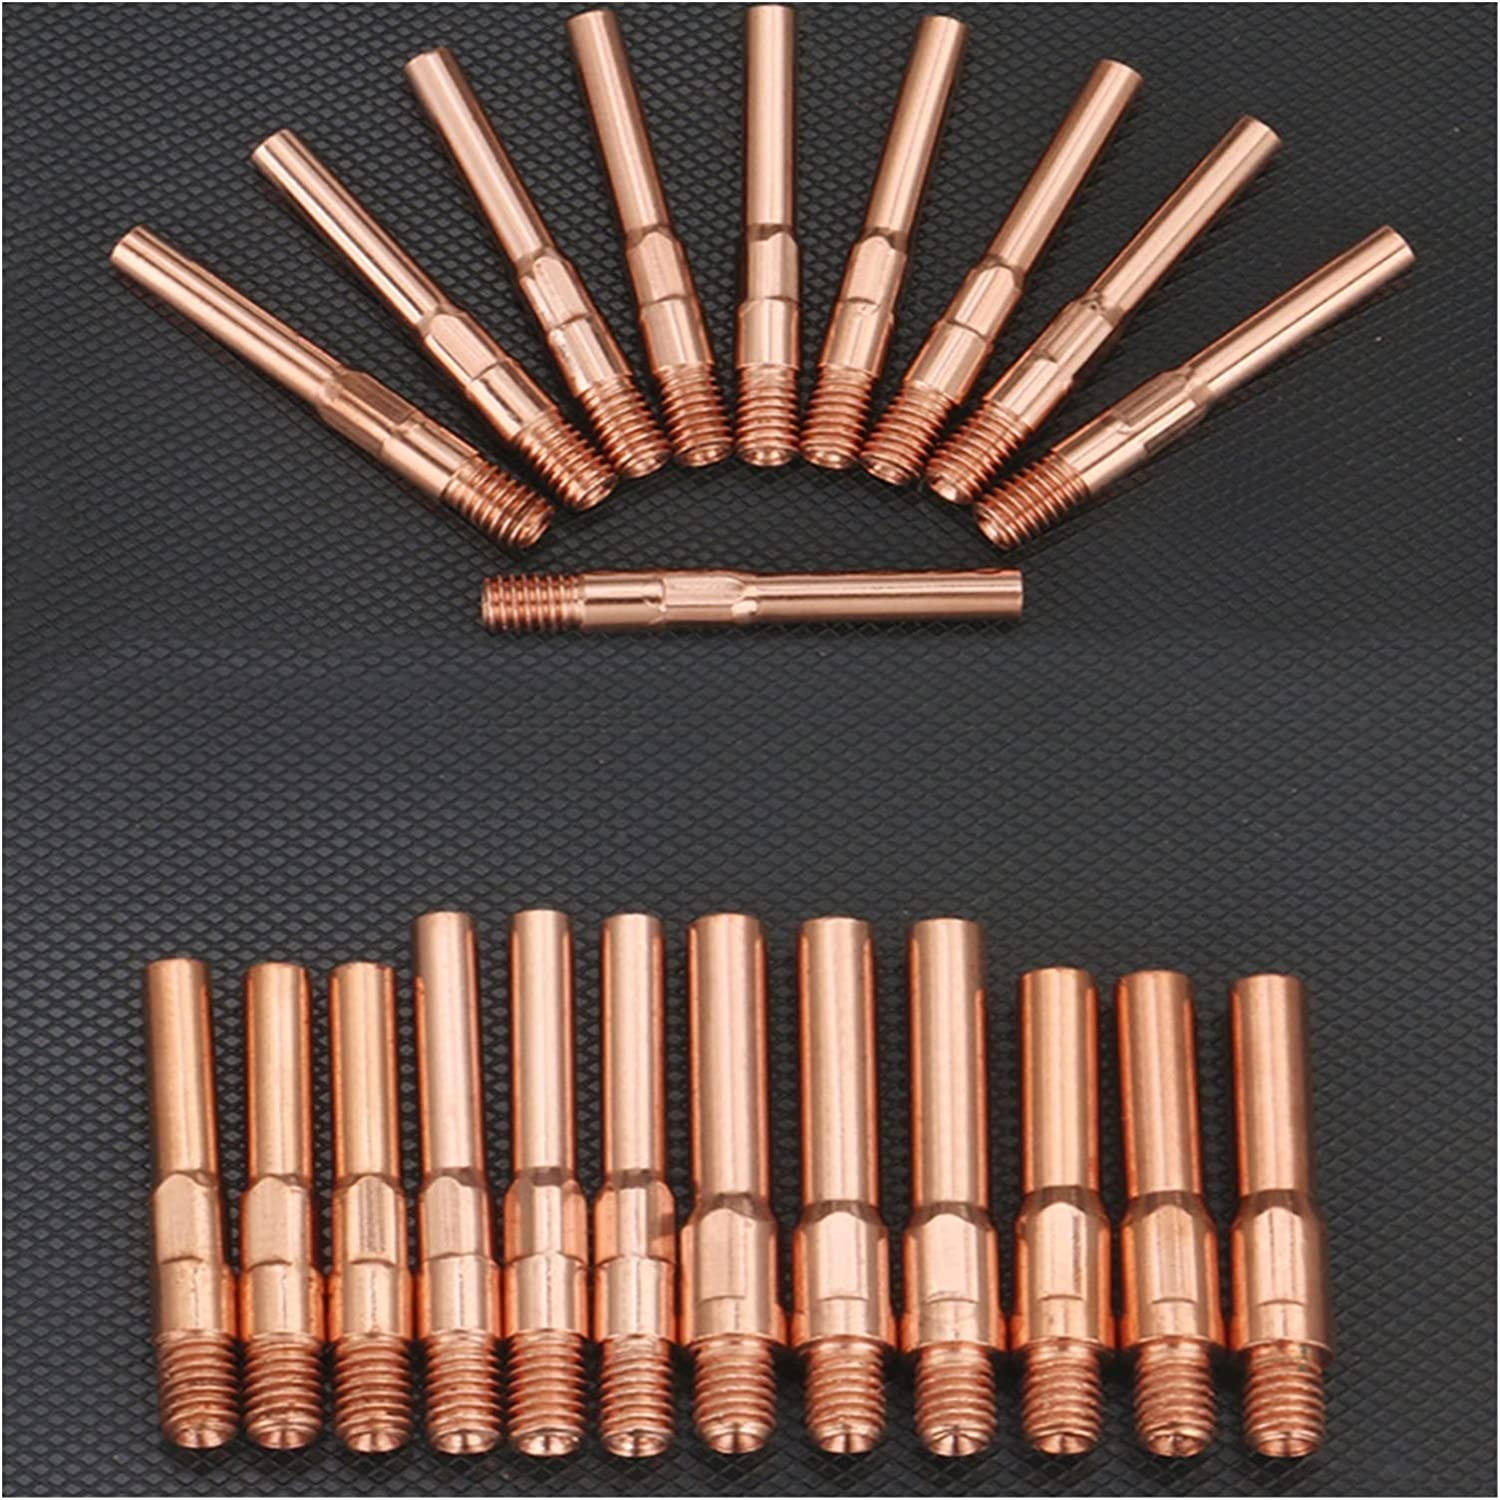 Welding nozzle 10 Pcs M6x8.8 Contact Nozzle Tips Popular products Multipu New products, world's highest quality popular!